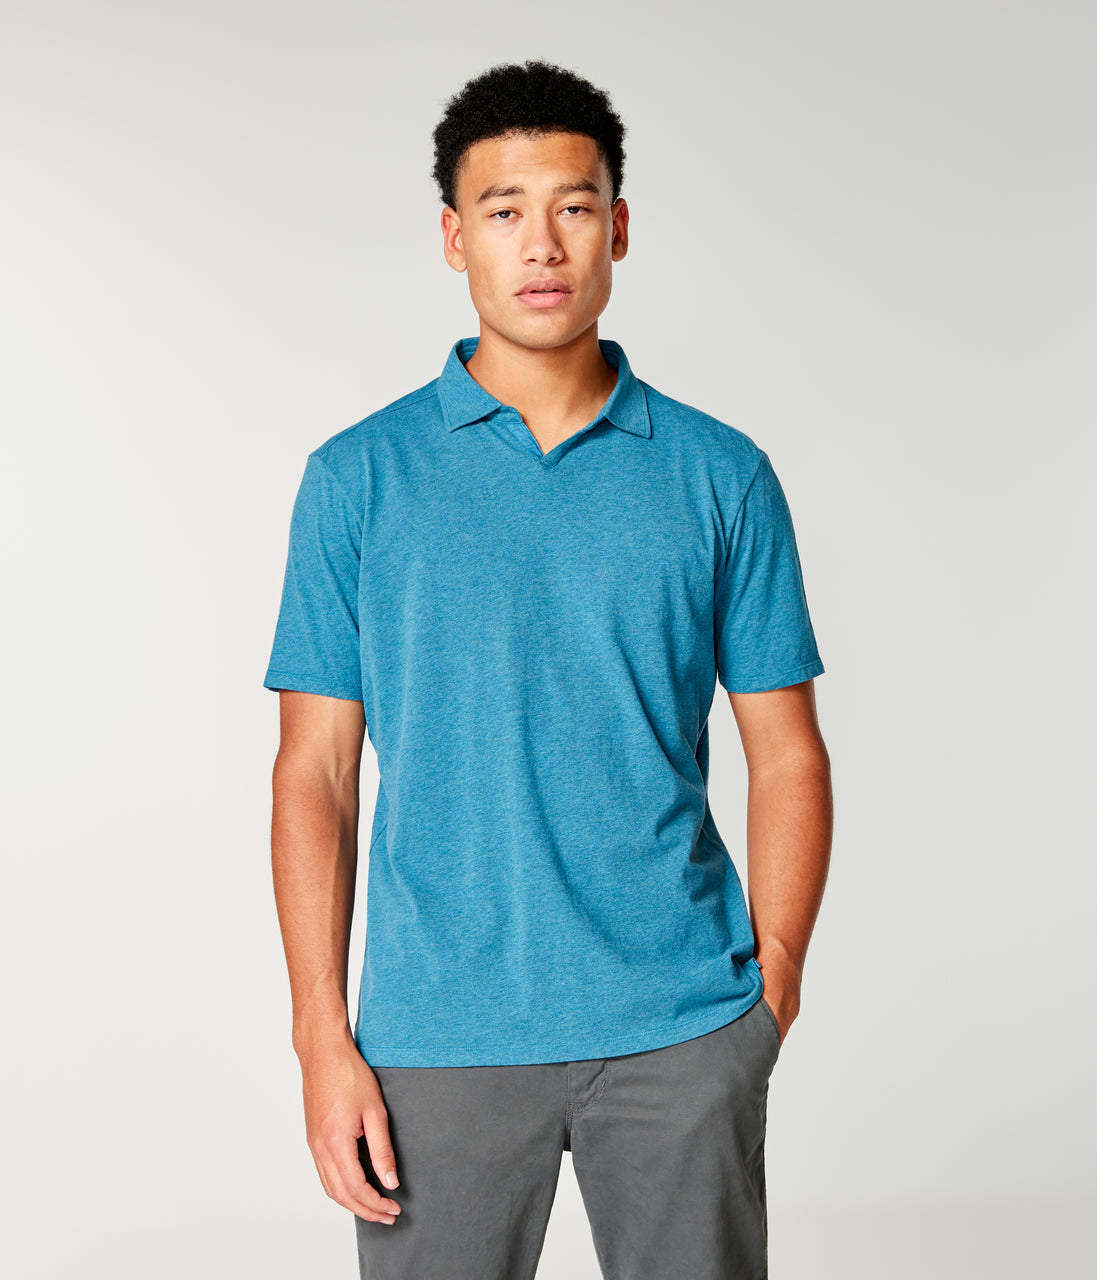 Heather Jersey Notch Neck Polo - Sea Heather - Good Man Brand - Heather Jersey Notch Neck Polo - Sea Heather